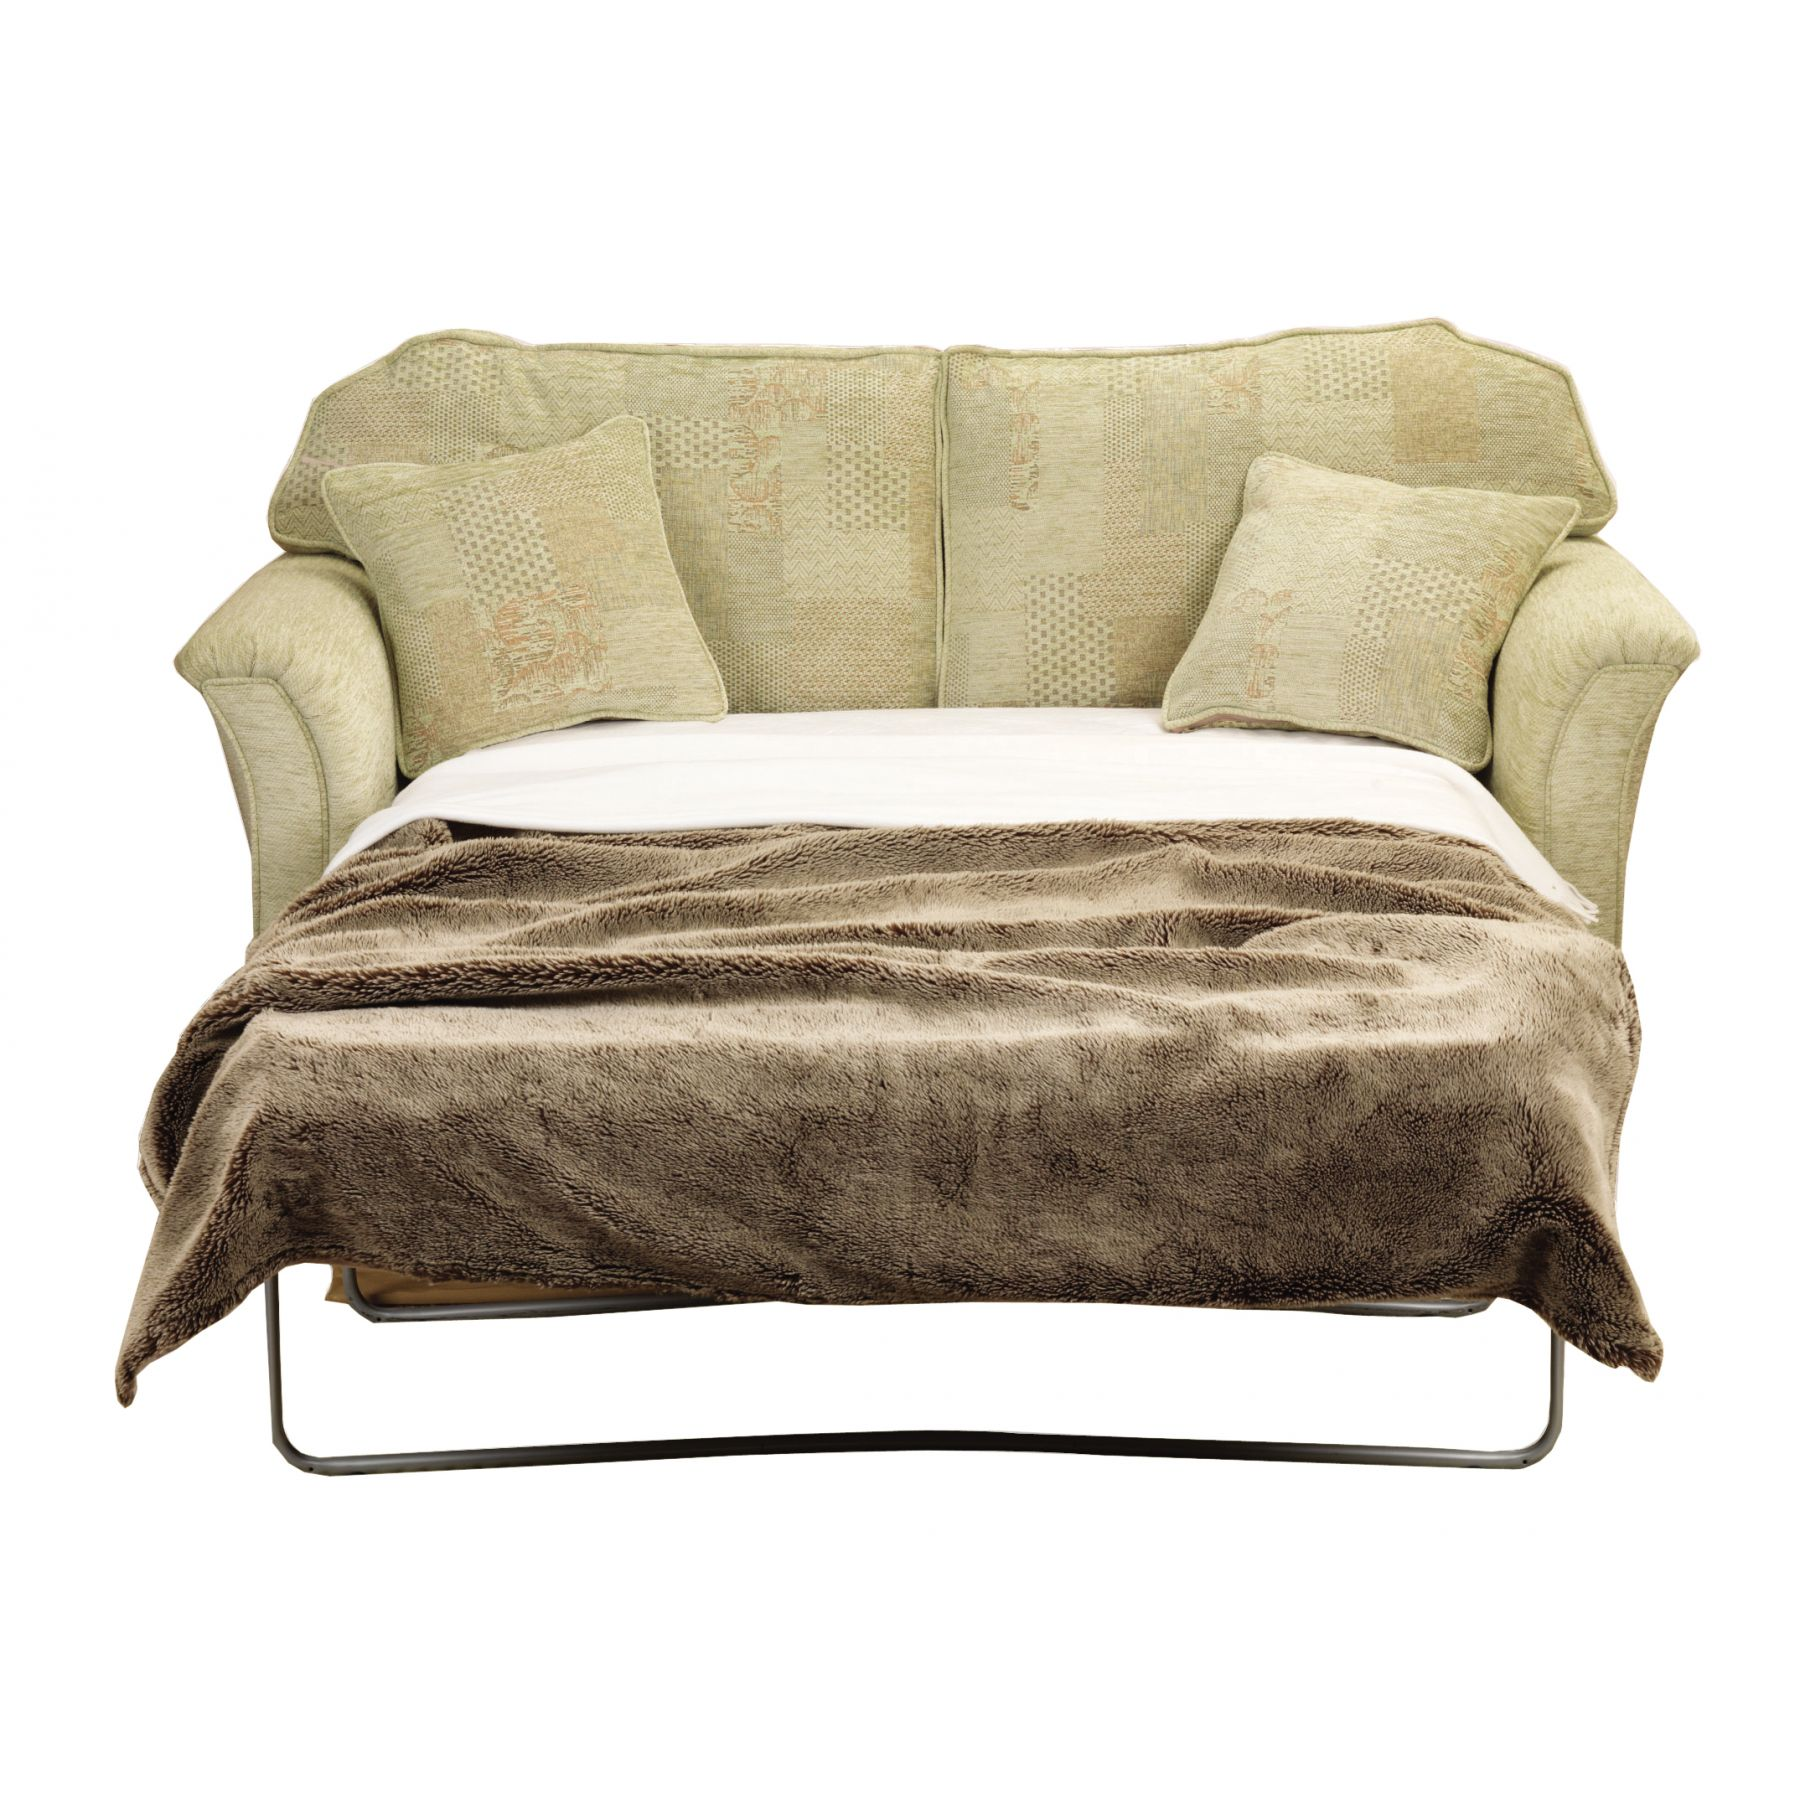 Convertible Loveseat Sofa Bed With Chaise Couch Sofa Ideas Interior Design: couch and bed